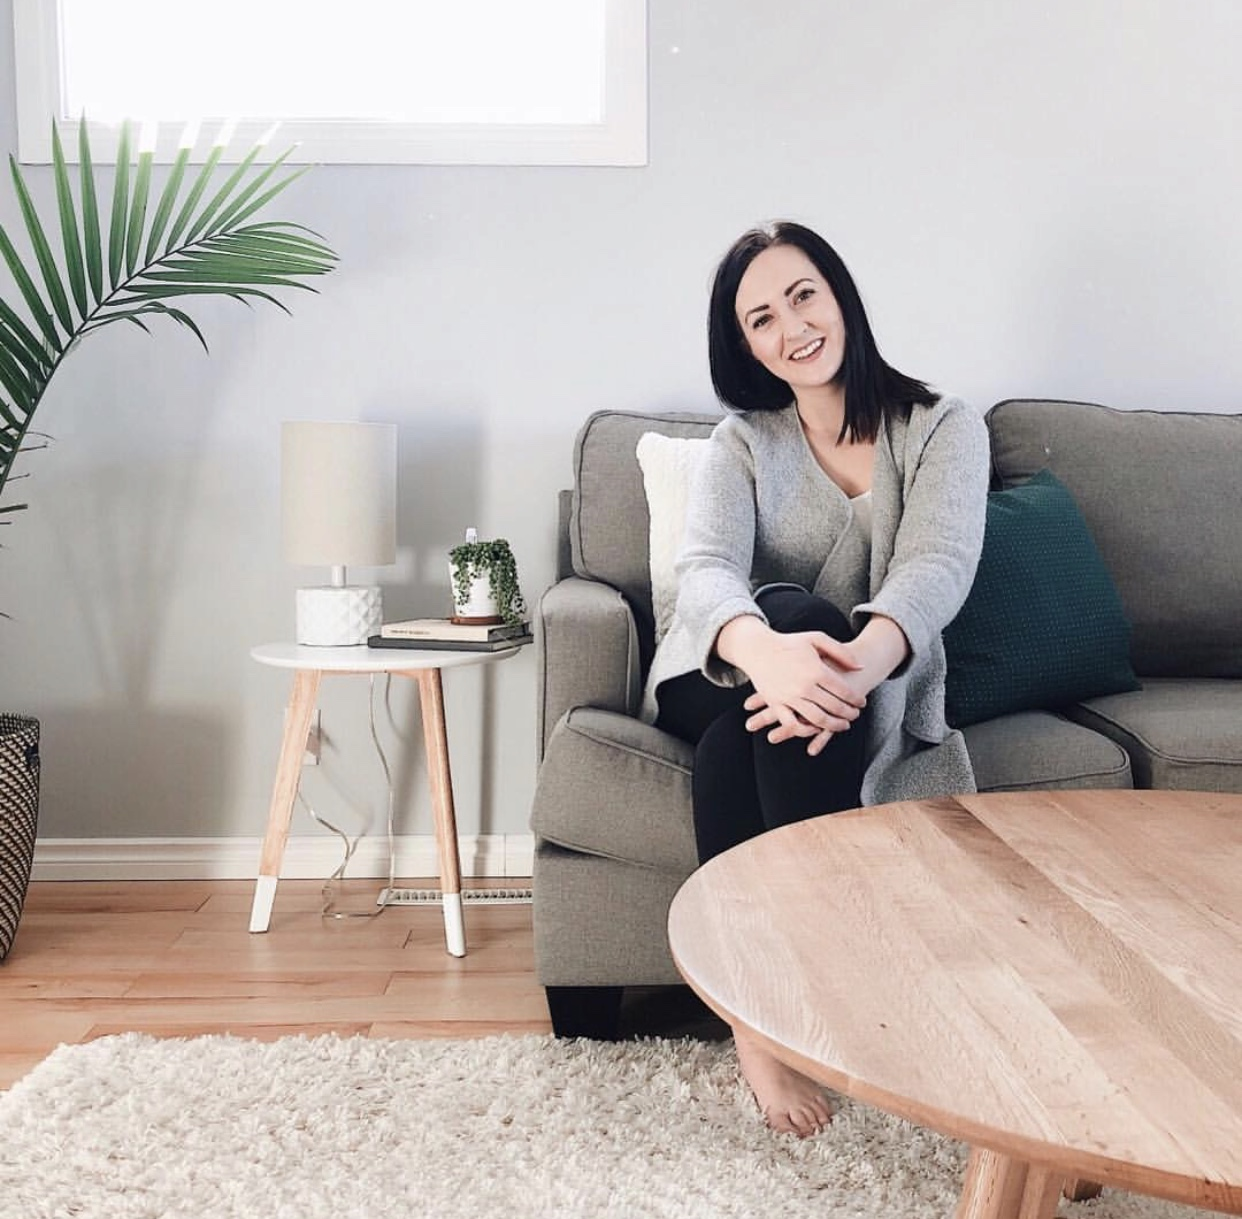 Gabrielle of @DesignOnHerMind - Interior design and lifestyle blog